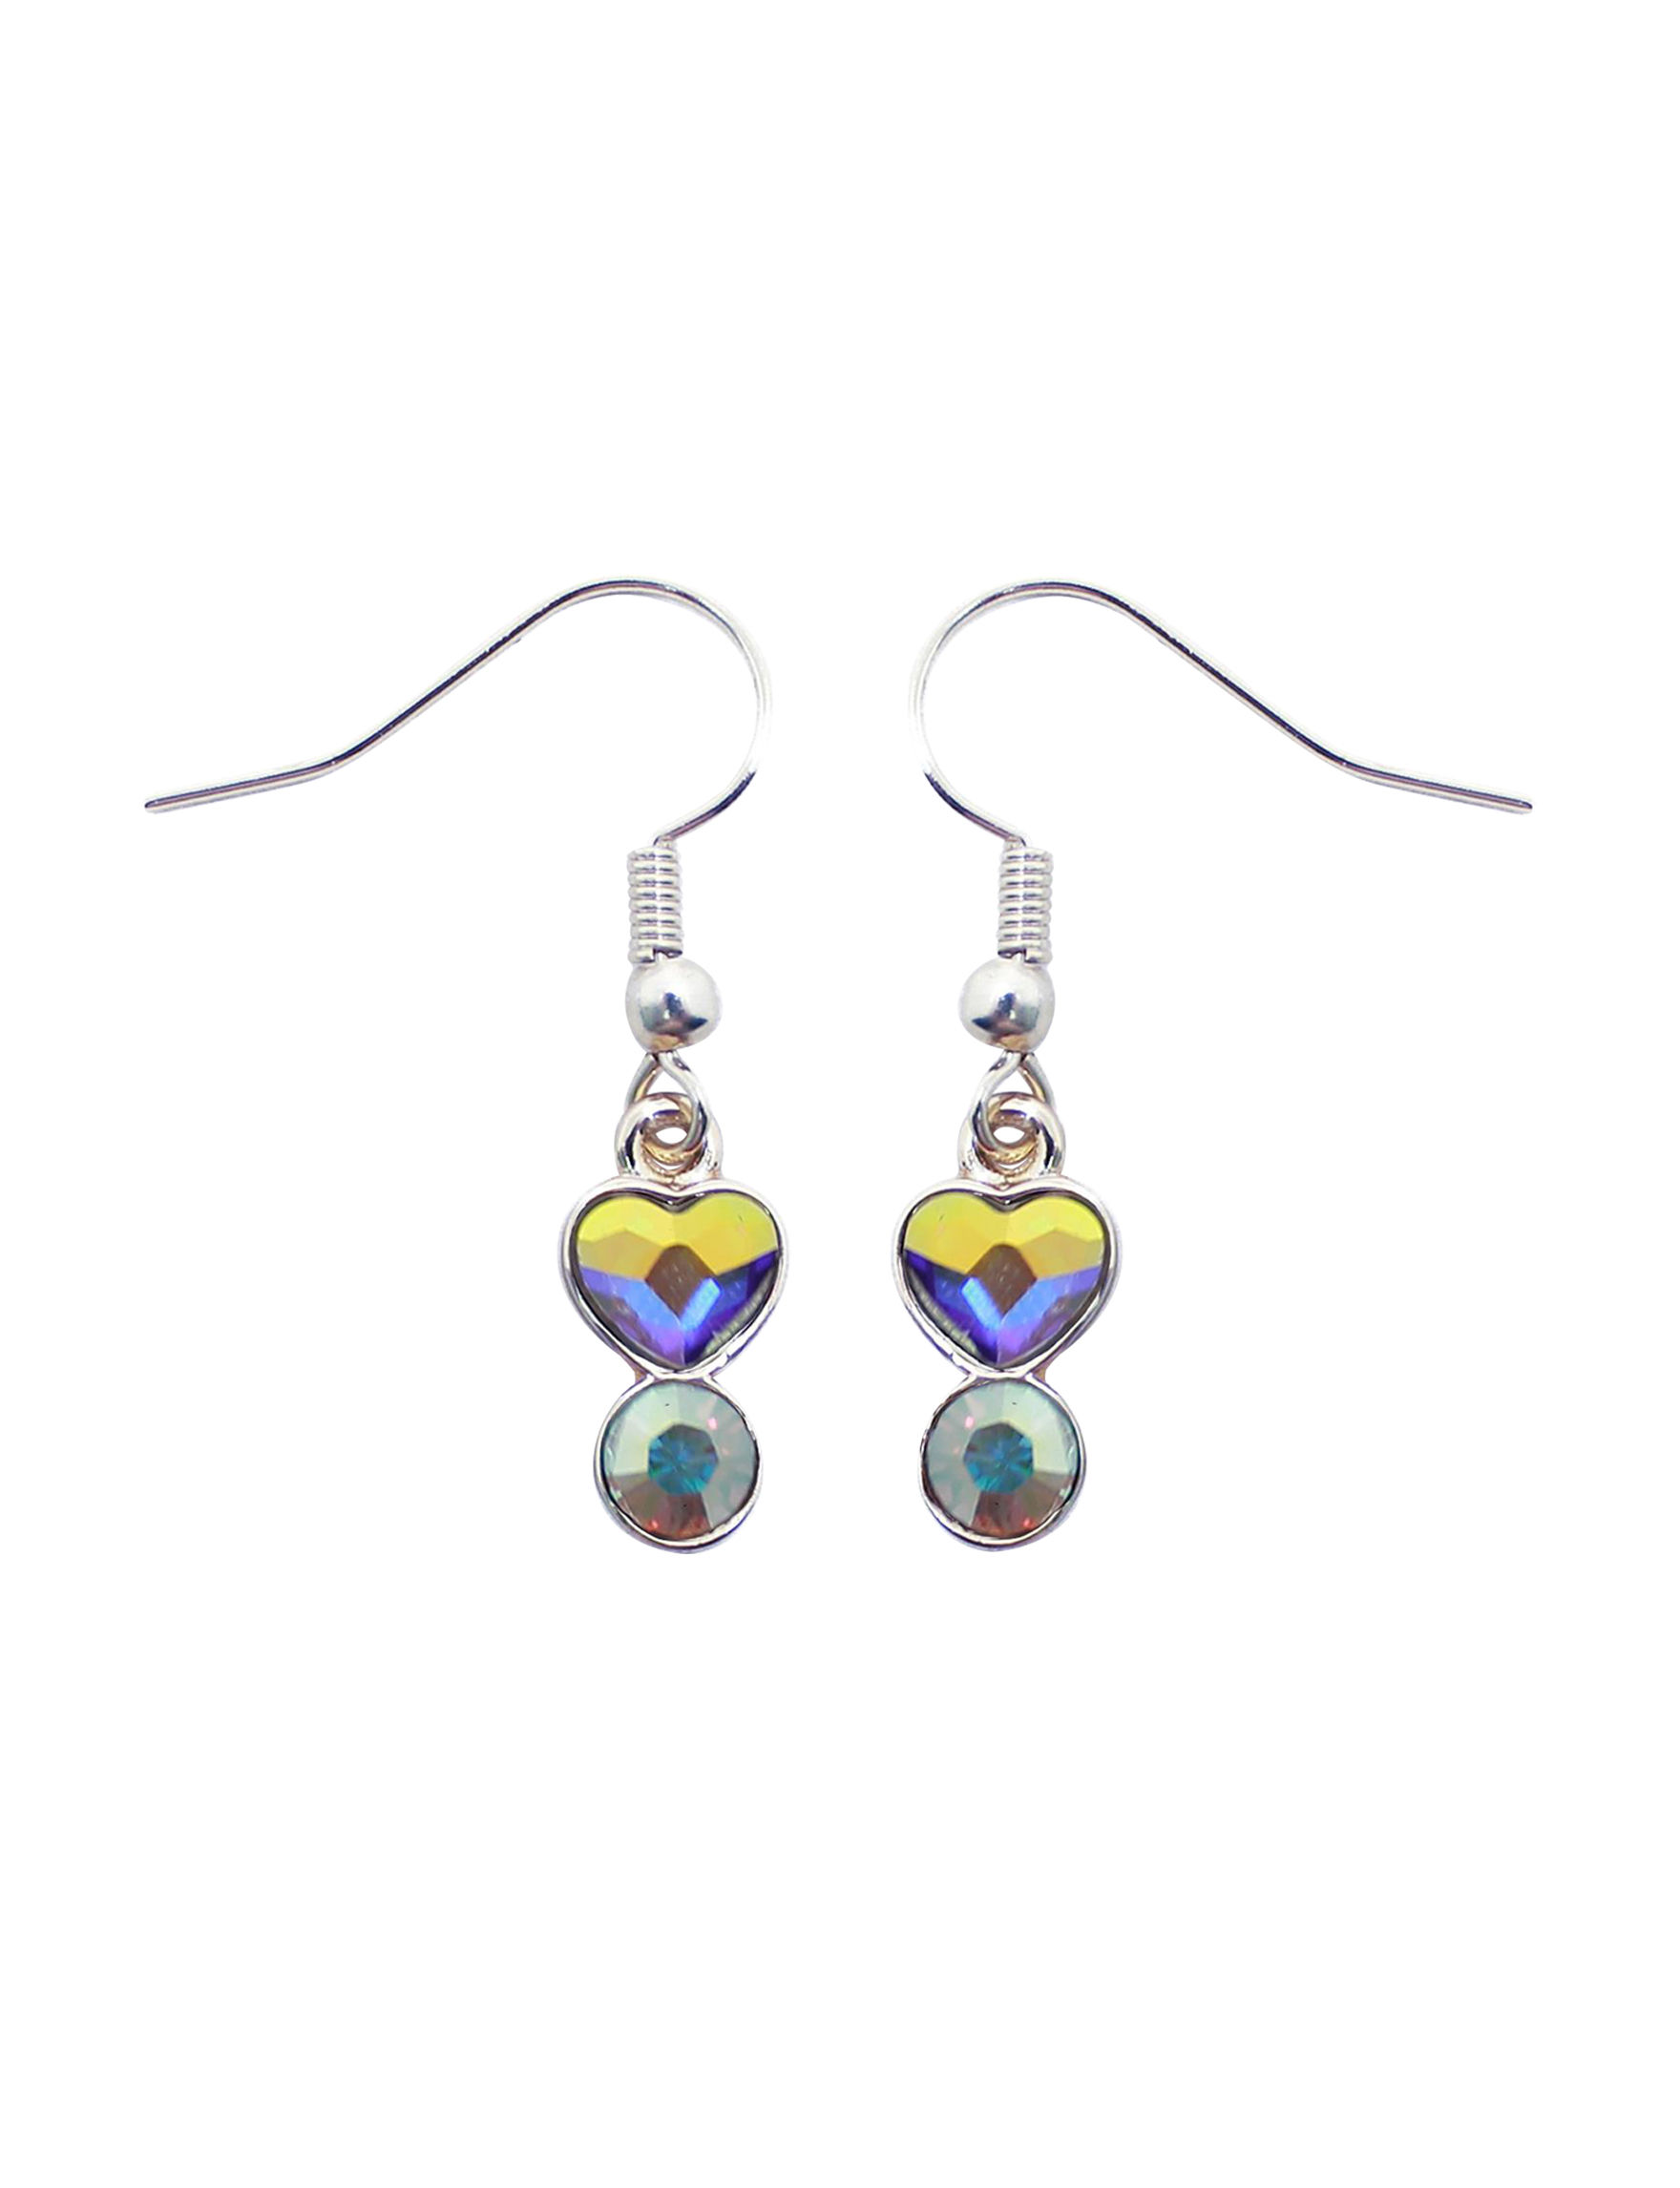 L & J Crystal Drops Earrings Fine Jewelry